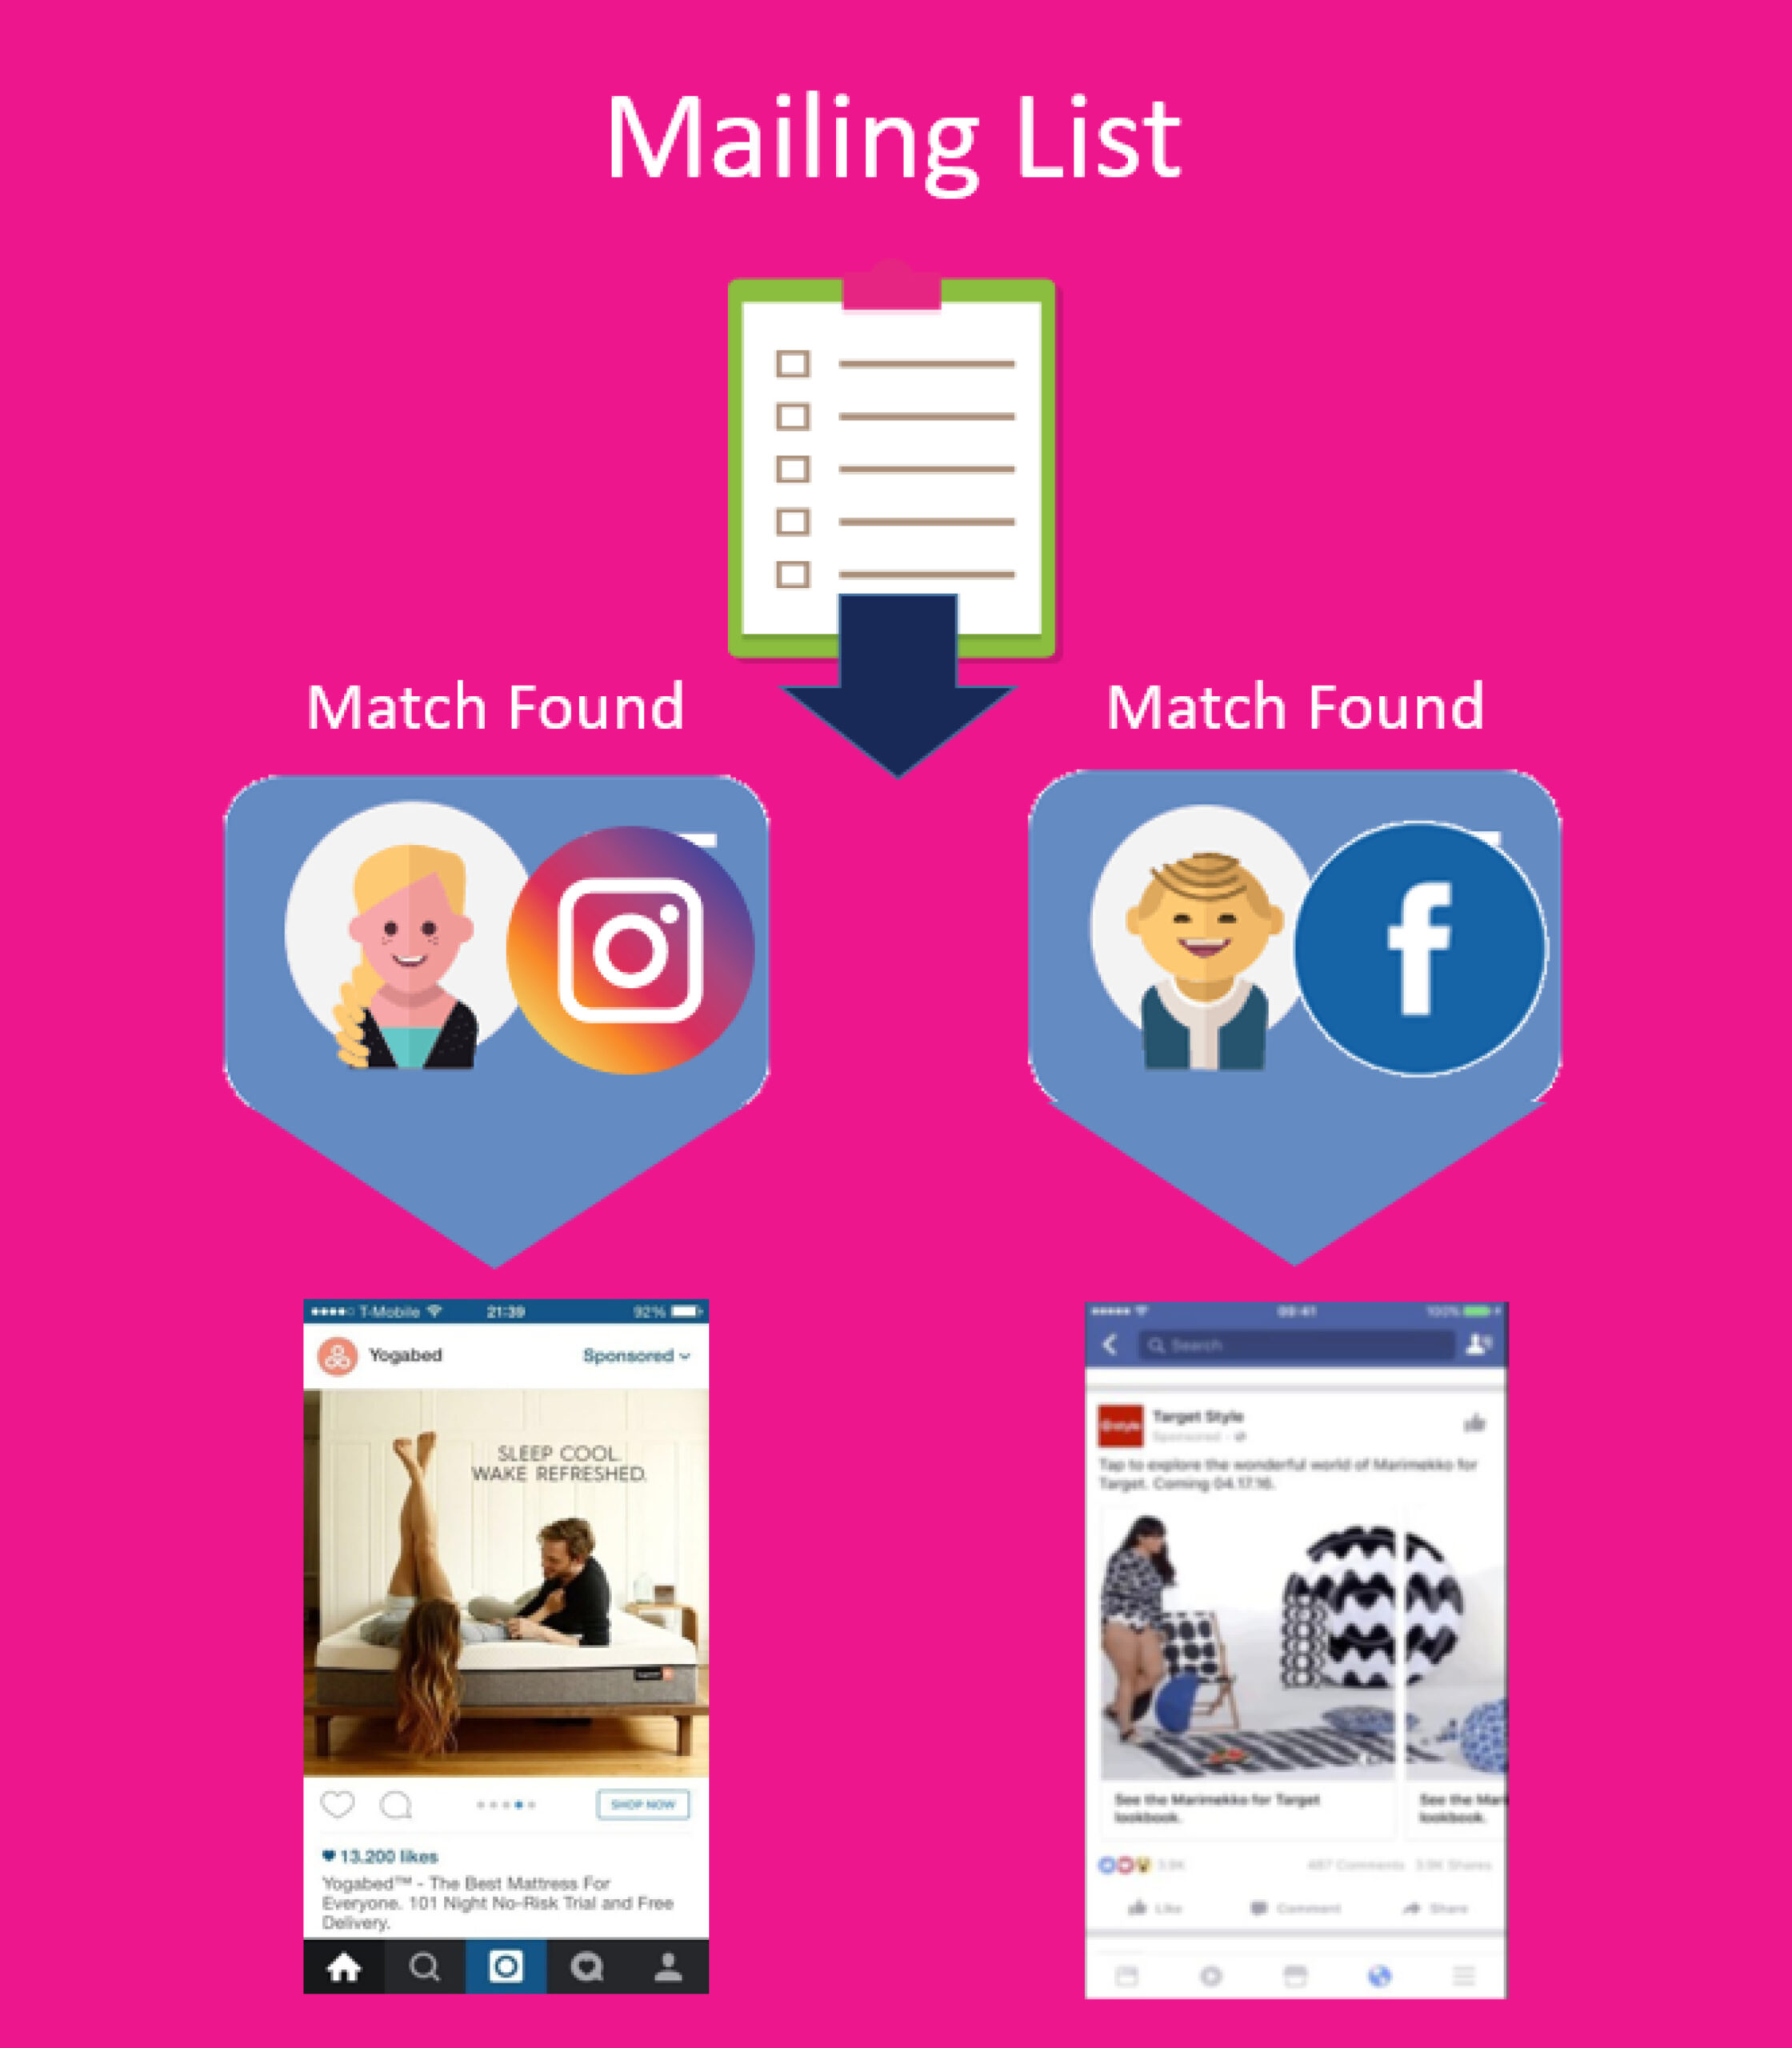 A graph showing a mailing list creating matches for Instagram and Facebook Advertising